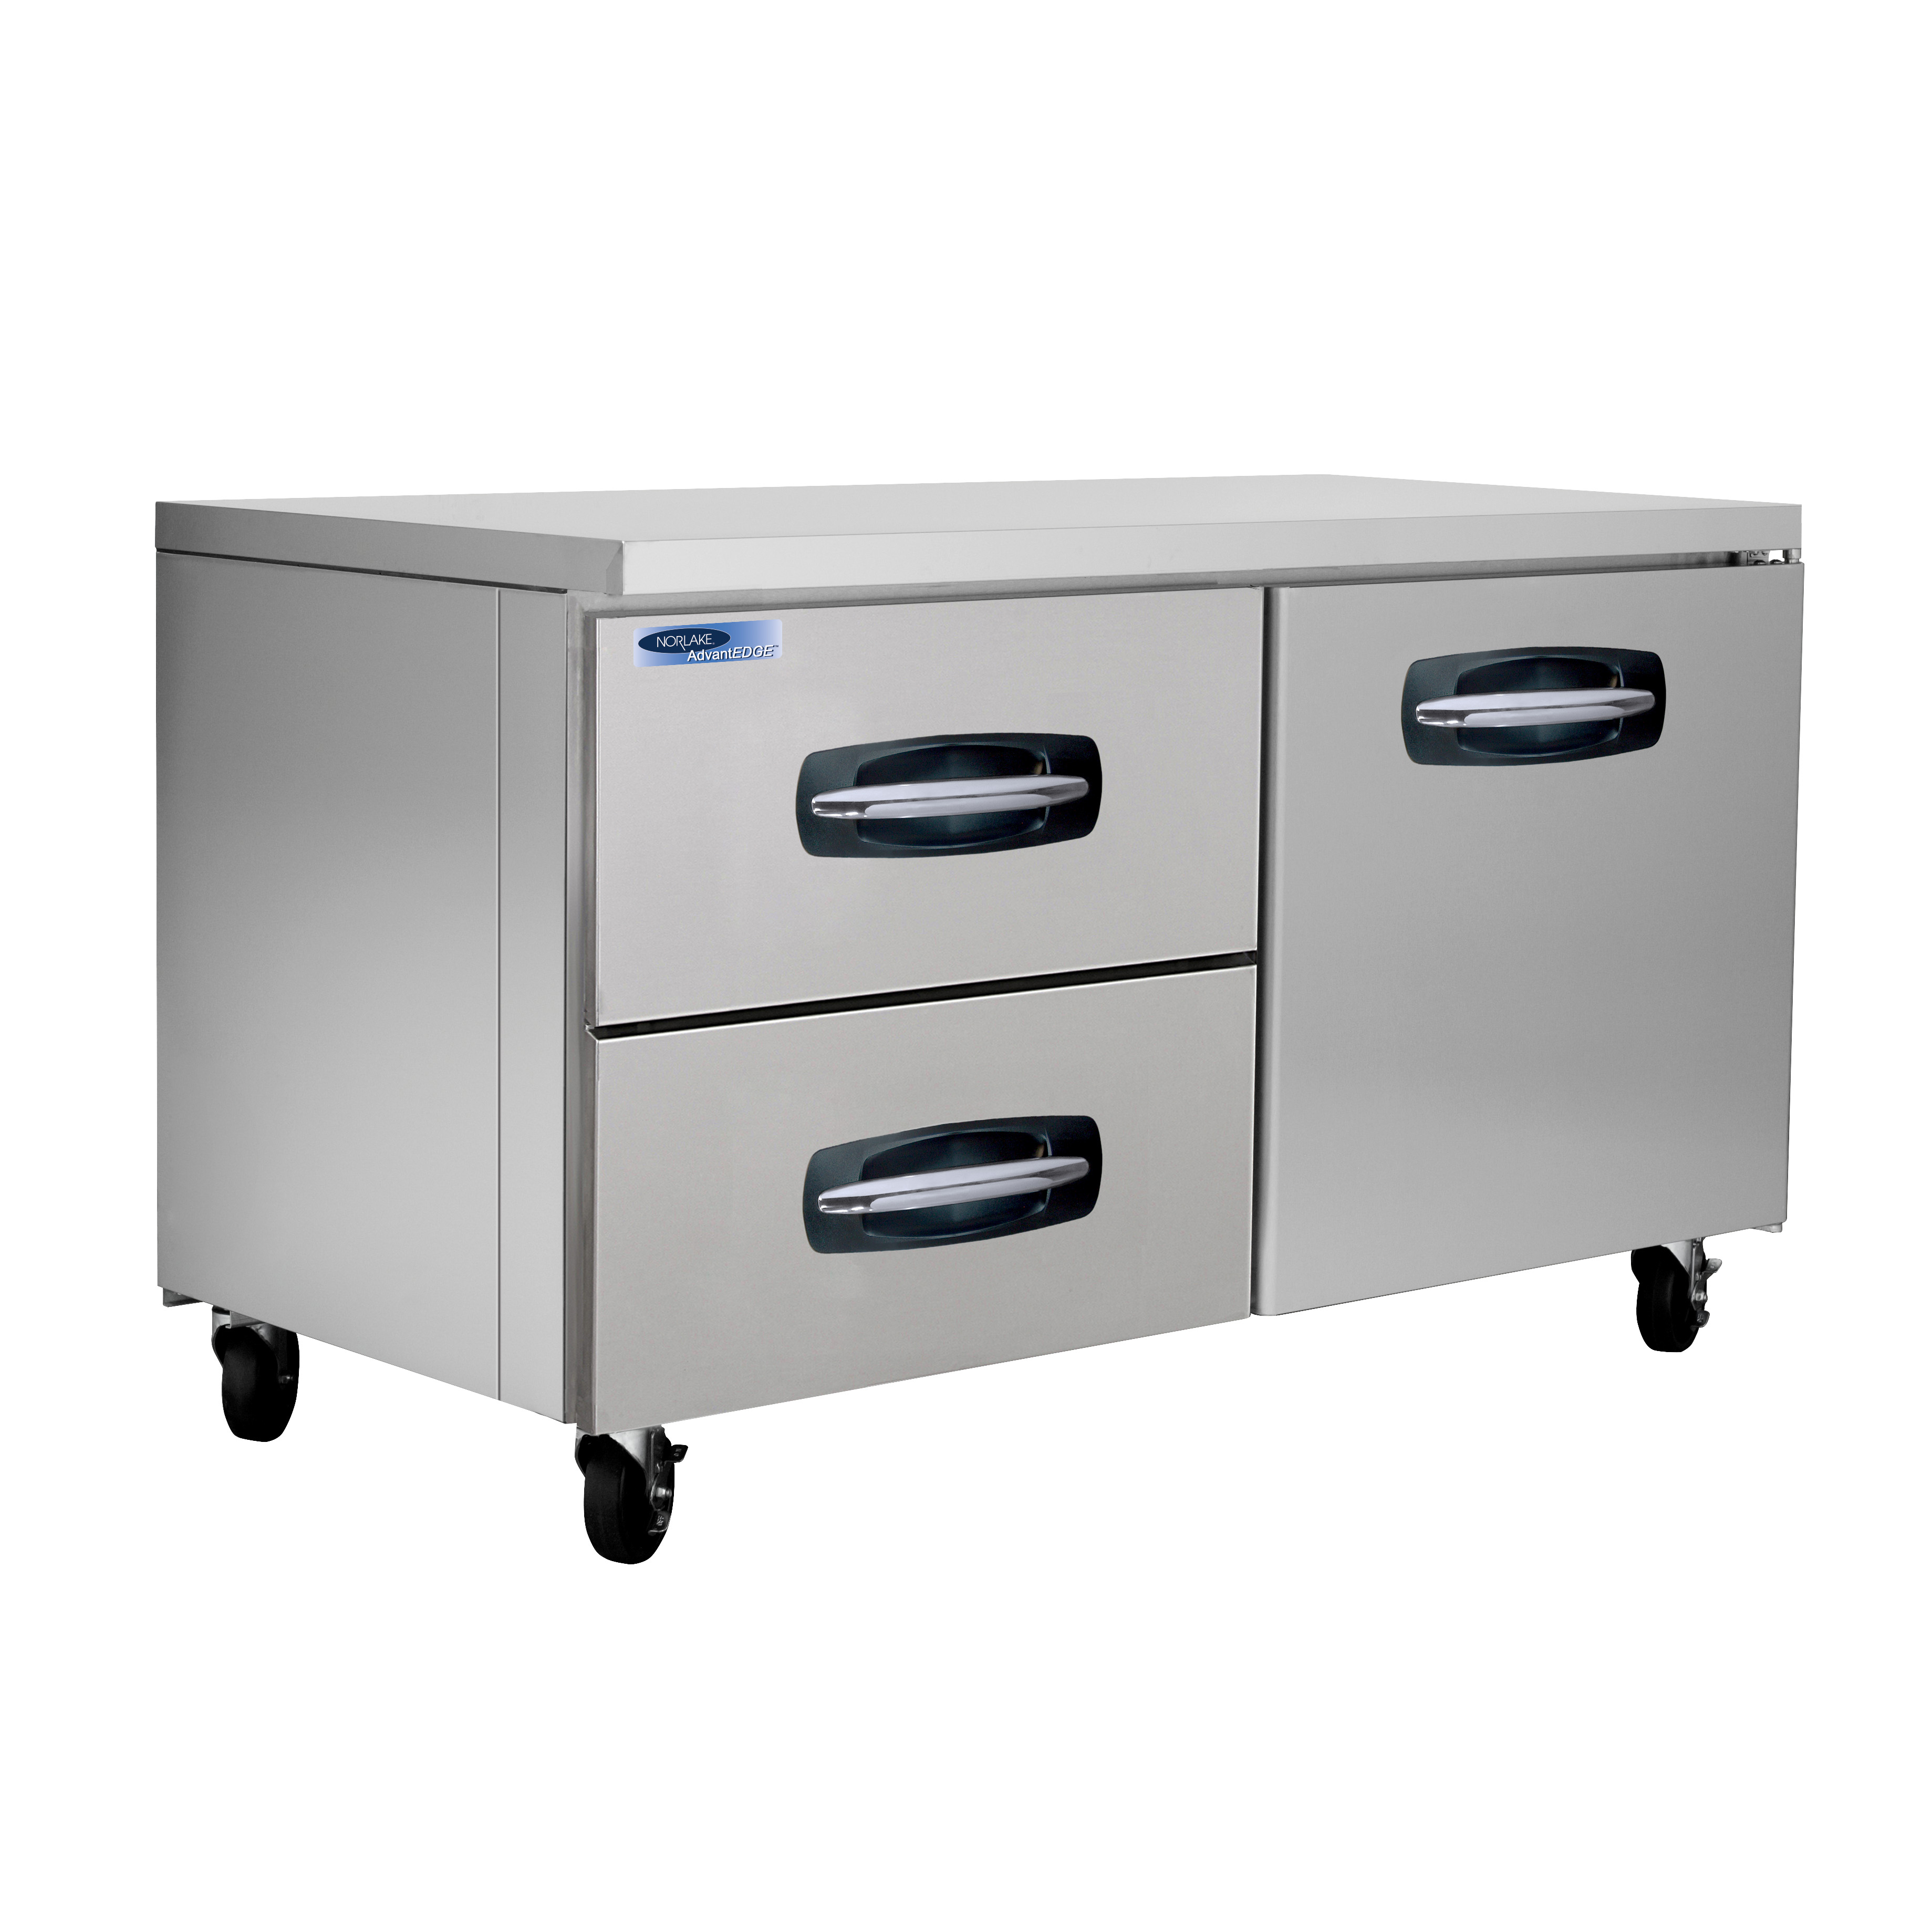 Nor-Lake NLUR60A-002B refrigerator, undercounter, reach-in